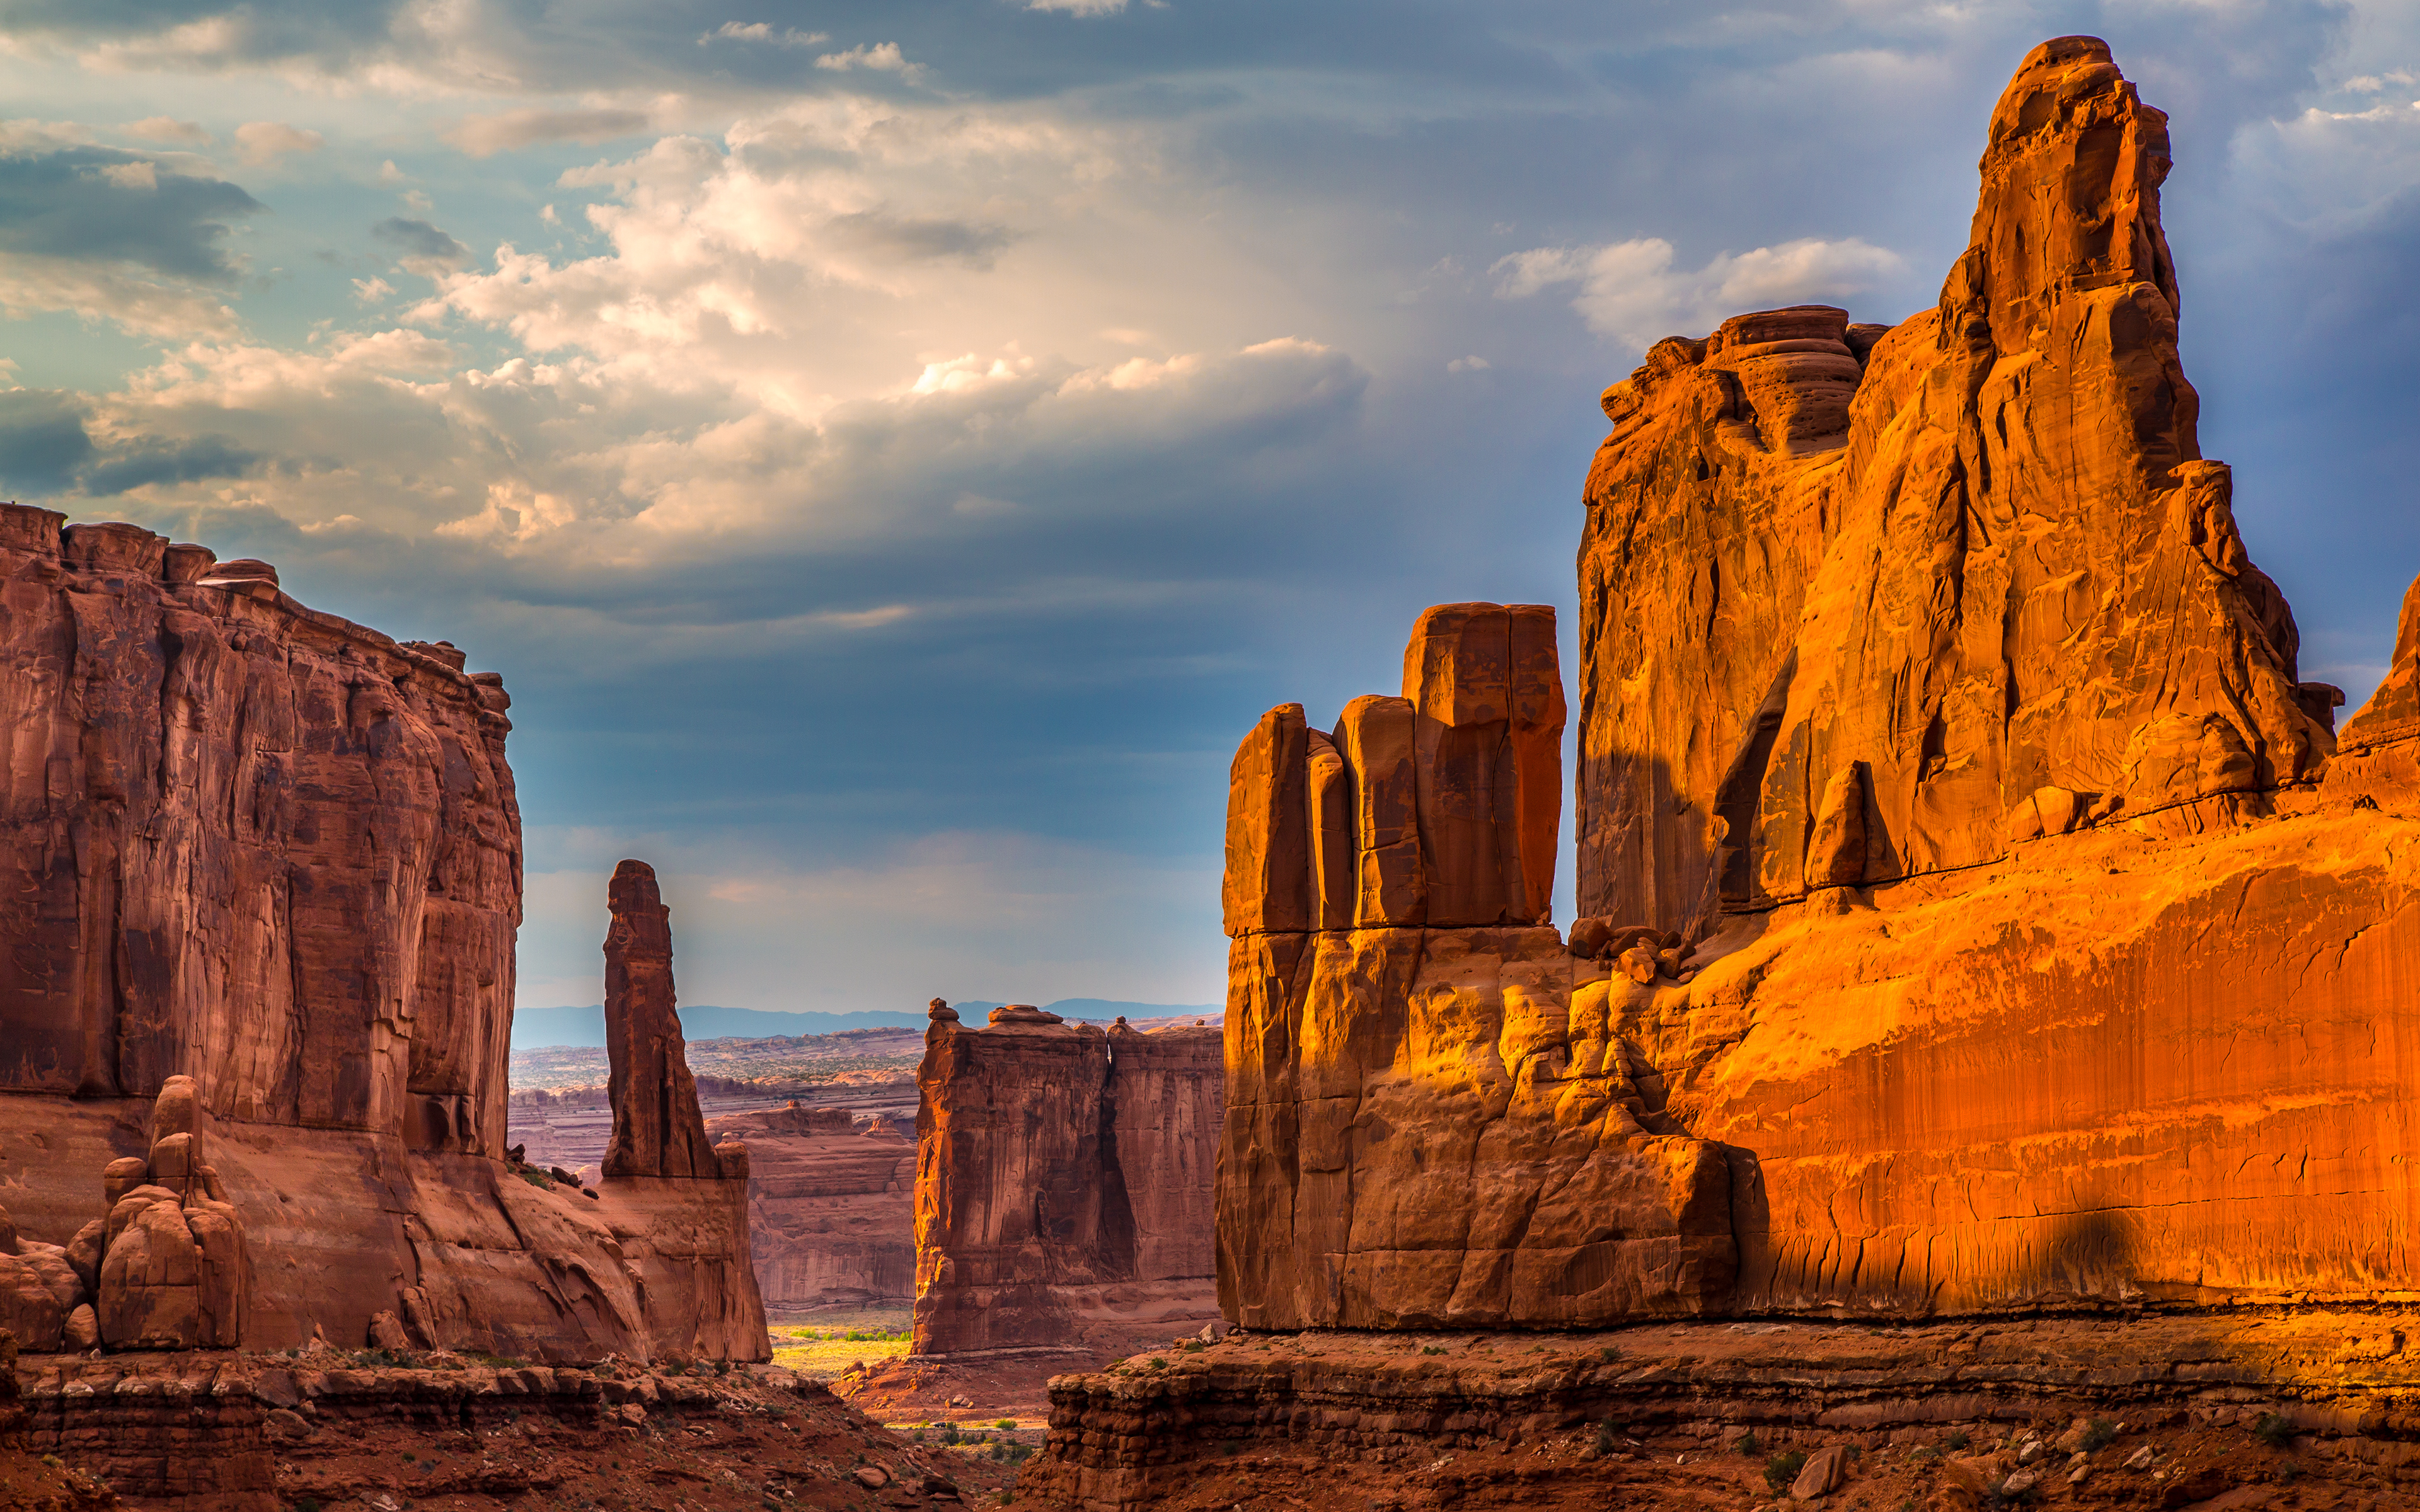 National Park Utah United States wallpapers and images   wallpapers 3840x2400